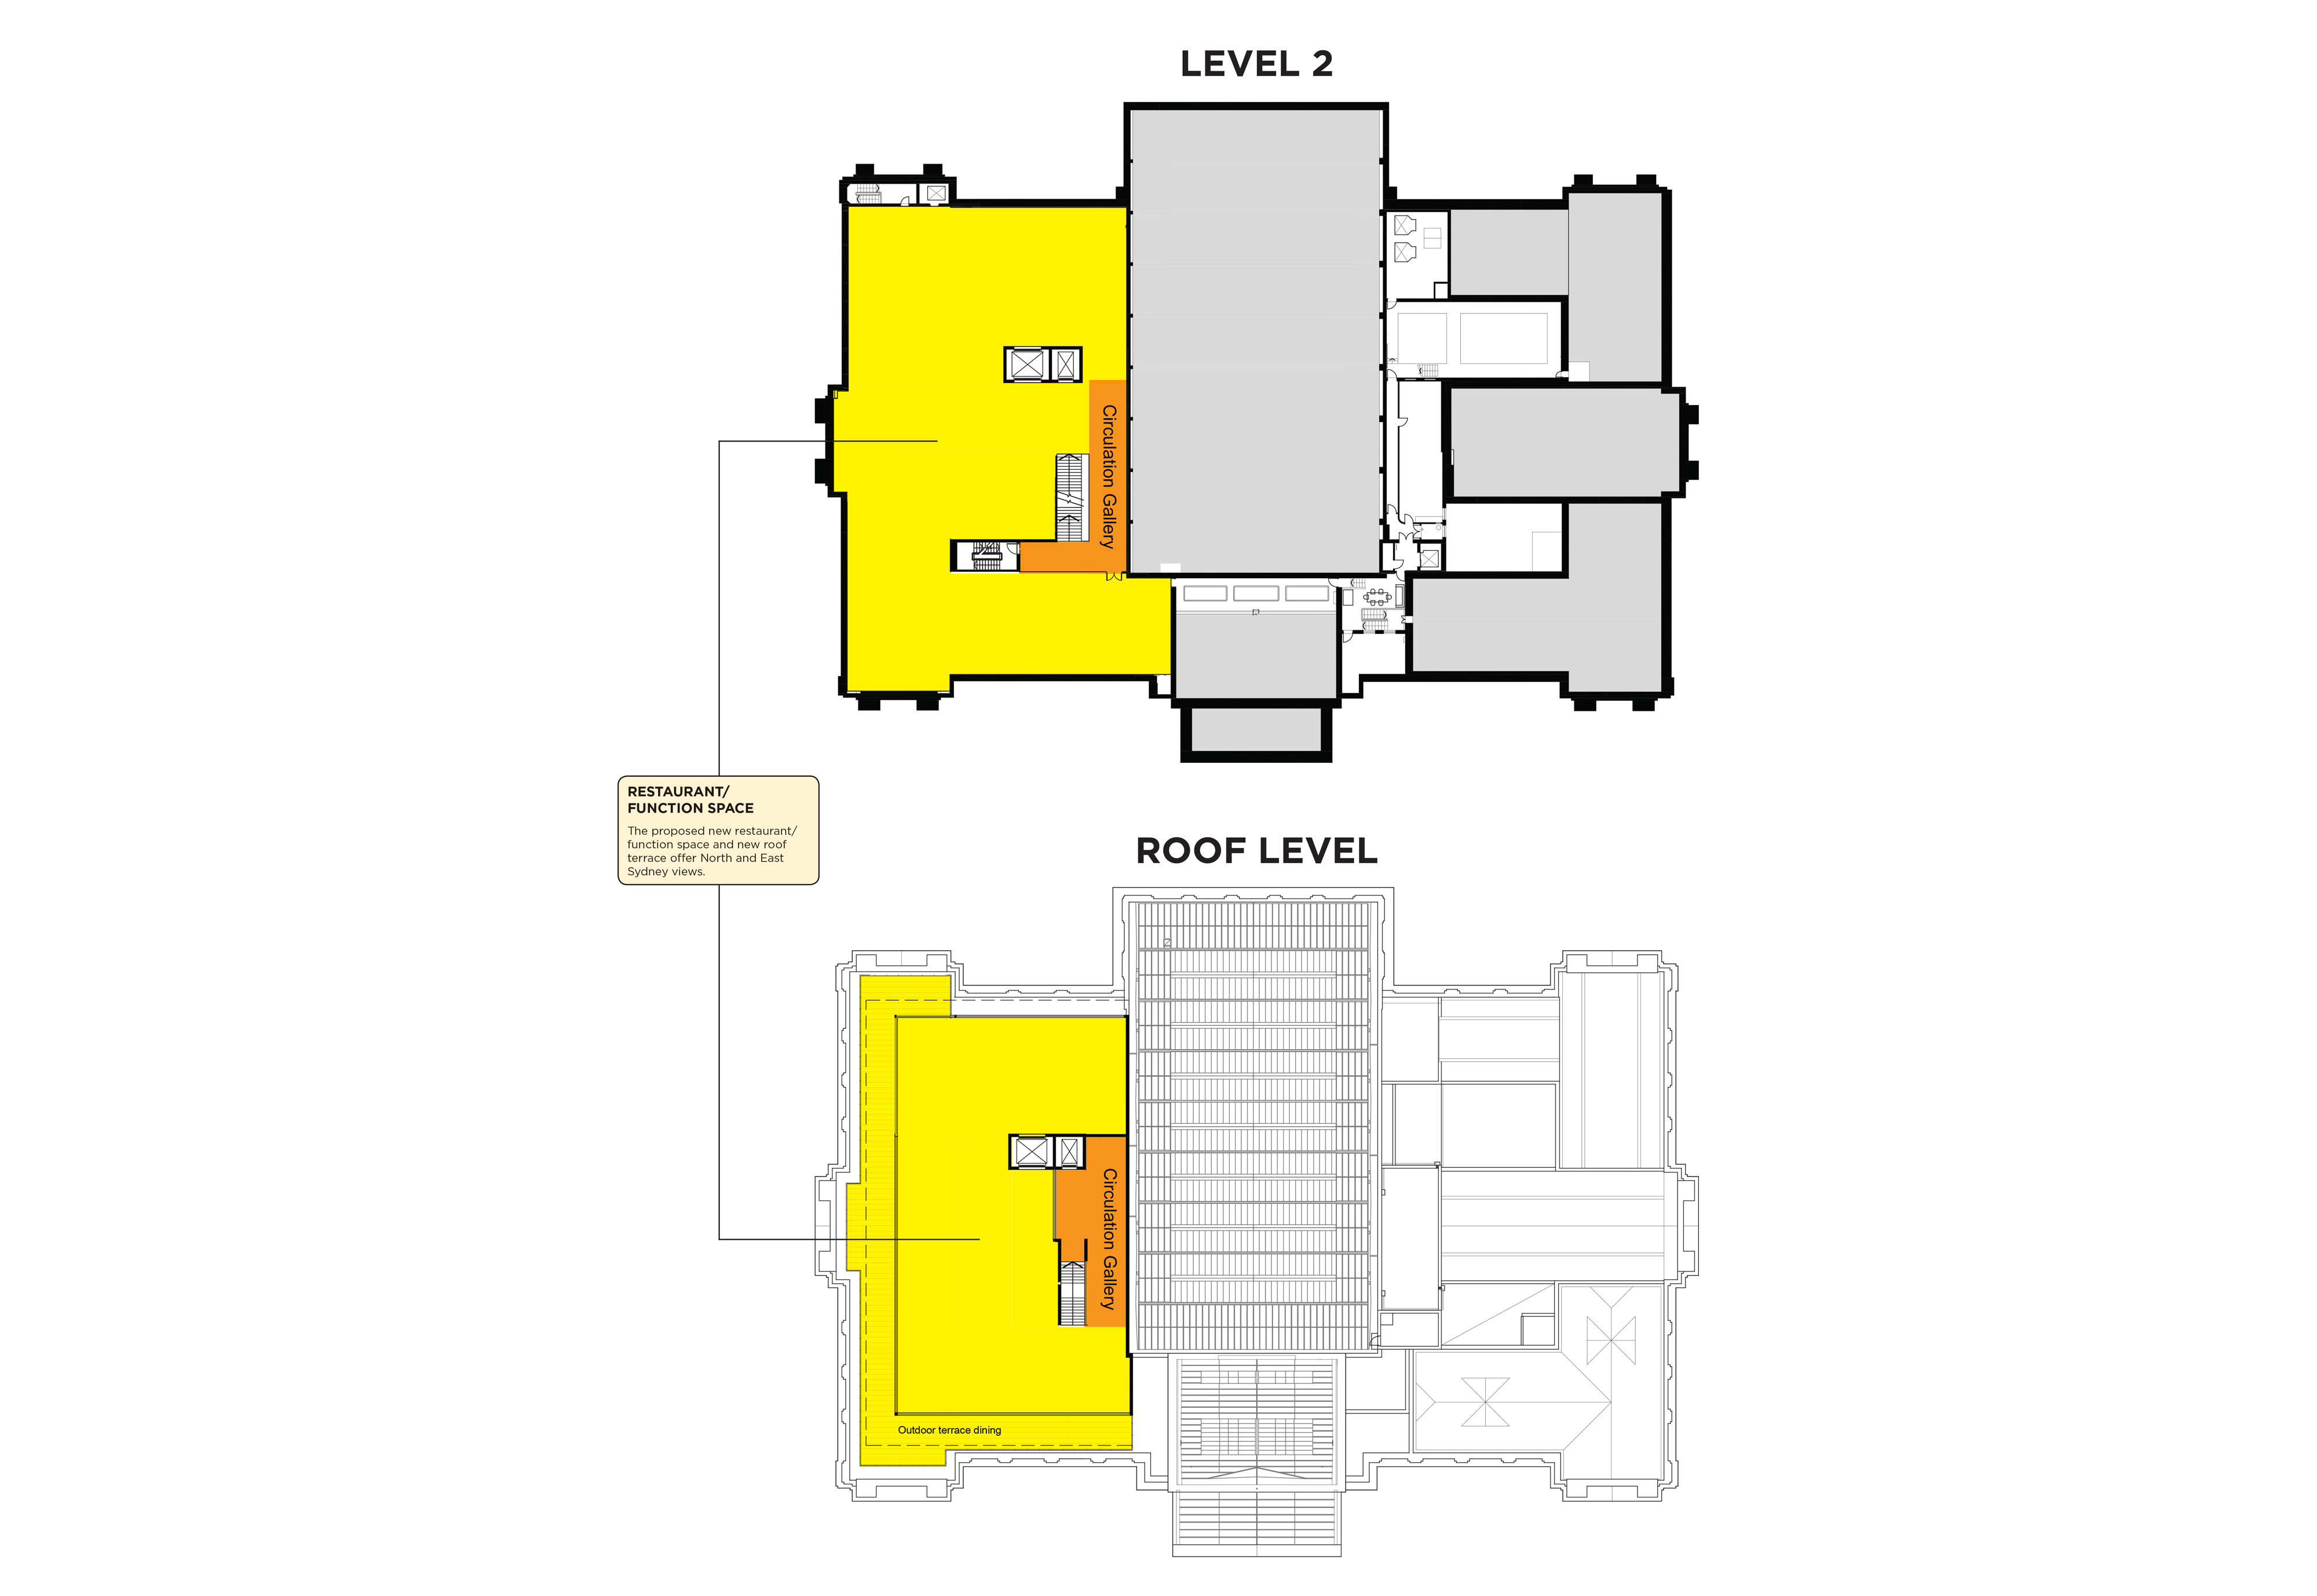 Mitchell building floor plan - Level 2 and Roof